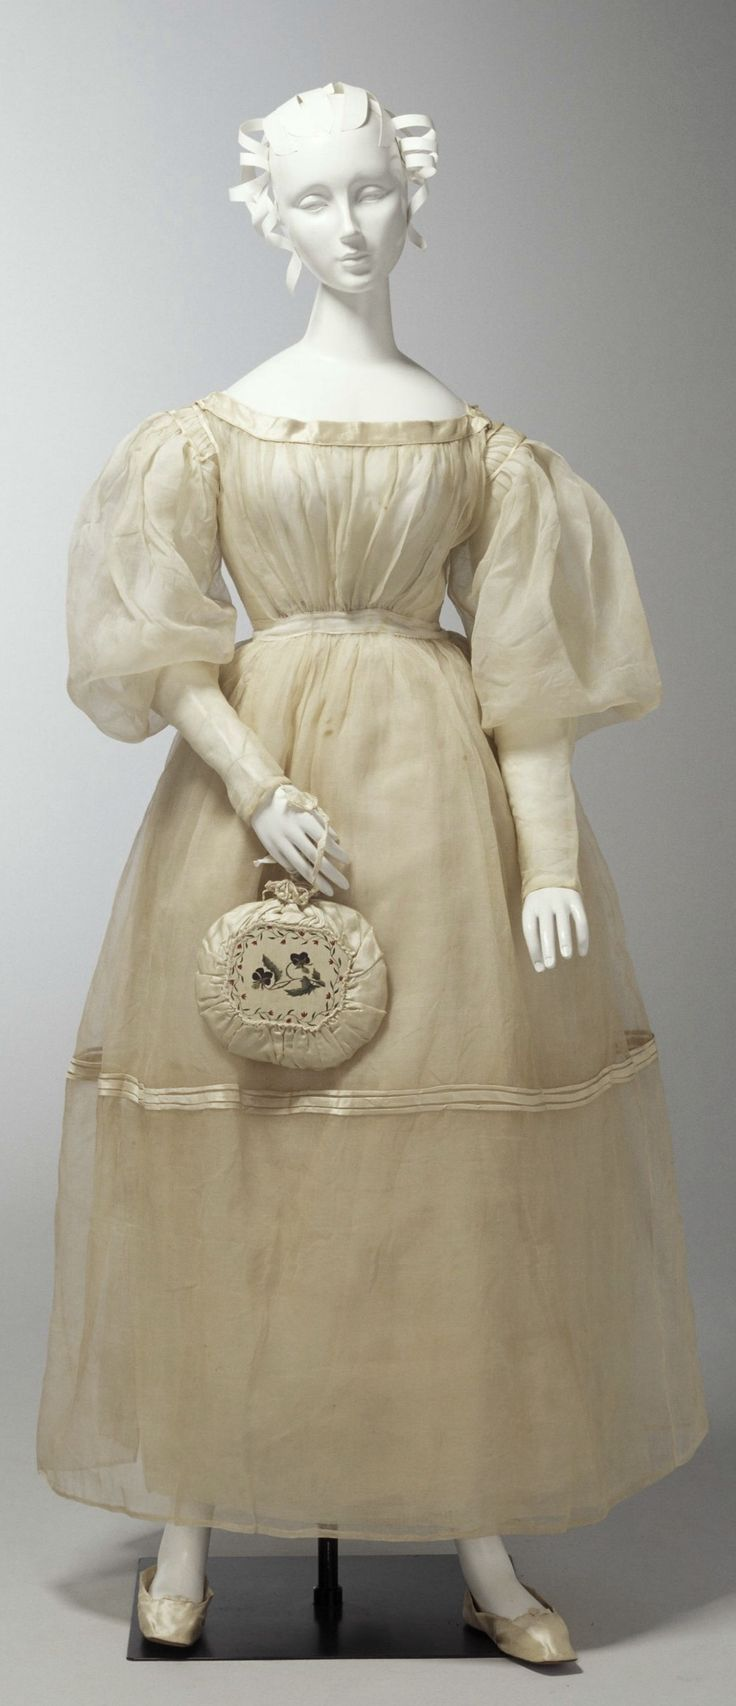 Wedding dress, shoes, and embroidered drawstring bag, Australian/English, 1833. Worn by Agnes Thompson for her wedding to Dr George Busby, government medical officer at the Convict Hospital at Bathurst, on 11 January 1833.